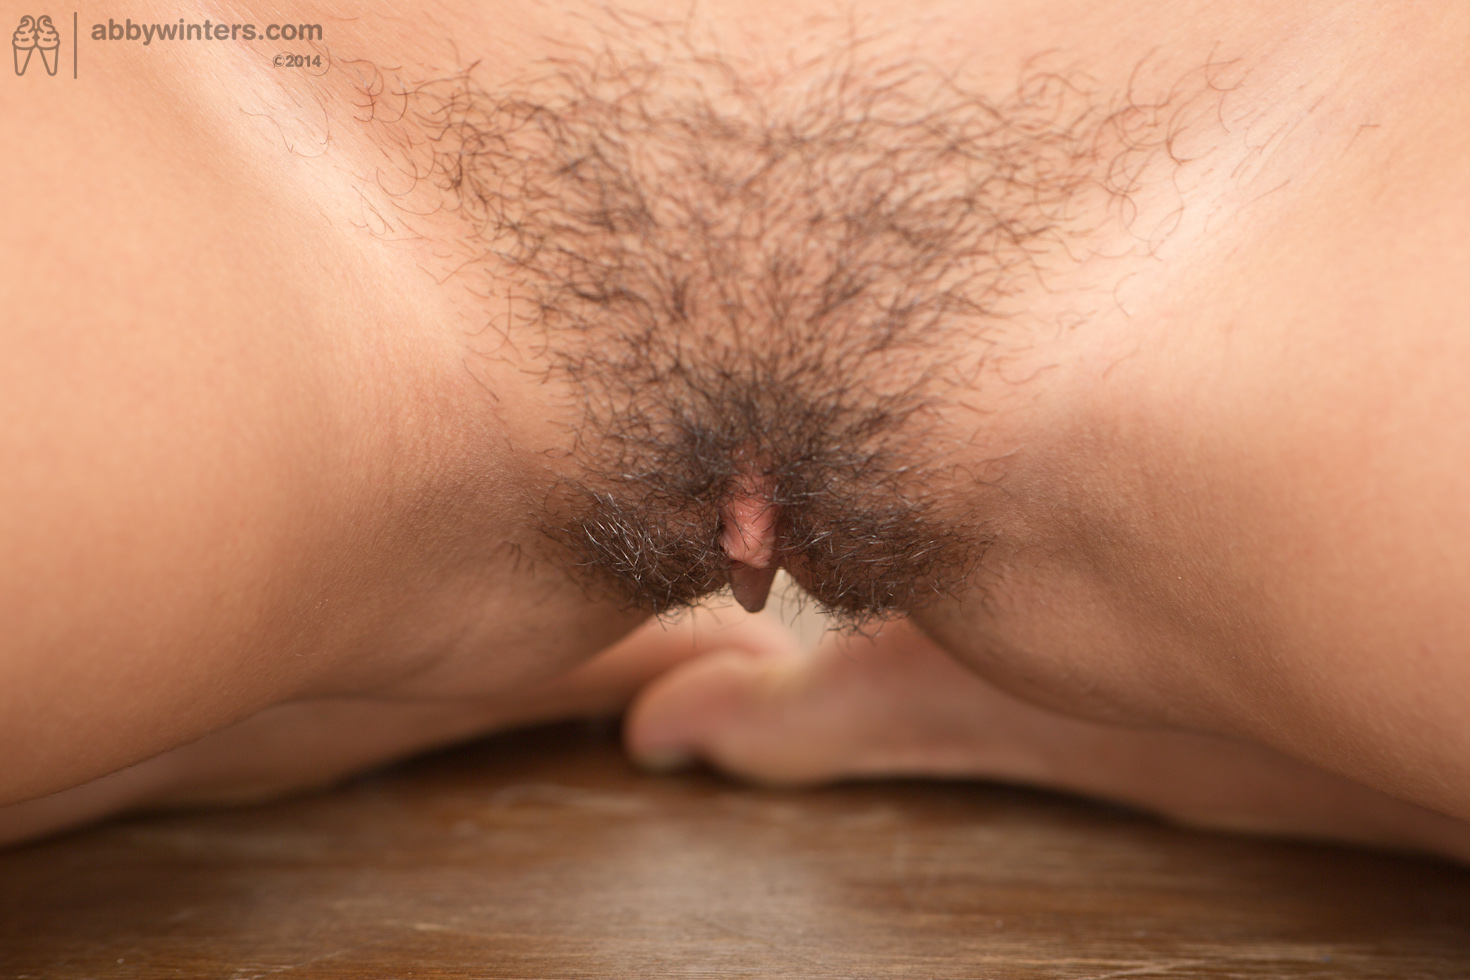 hairy pussy petite girl nude yoga session | the hairy lady blog